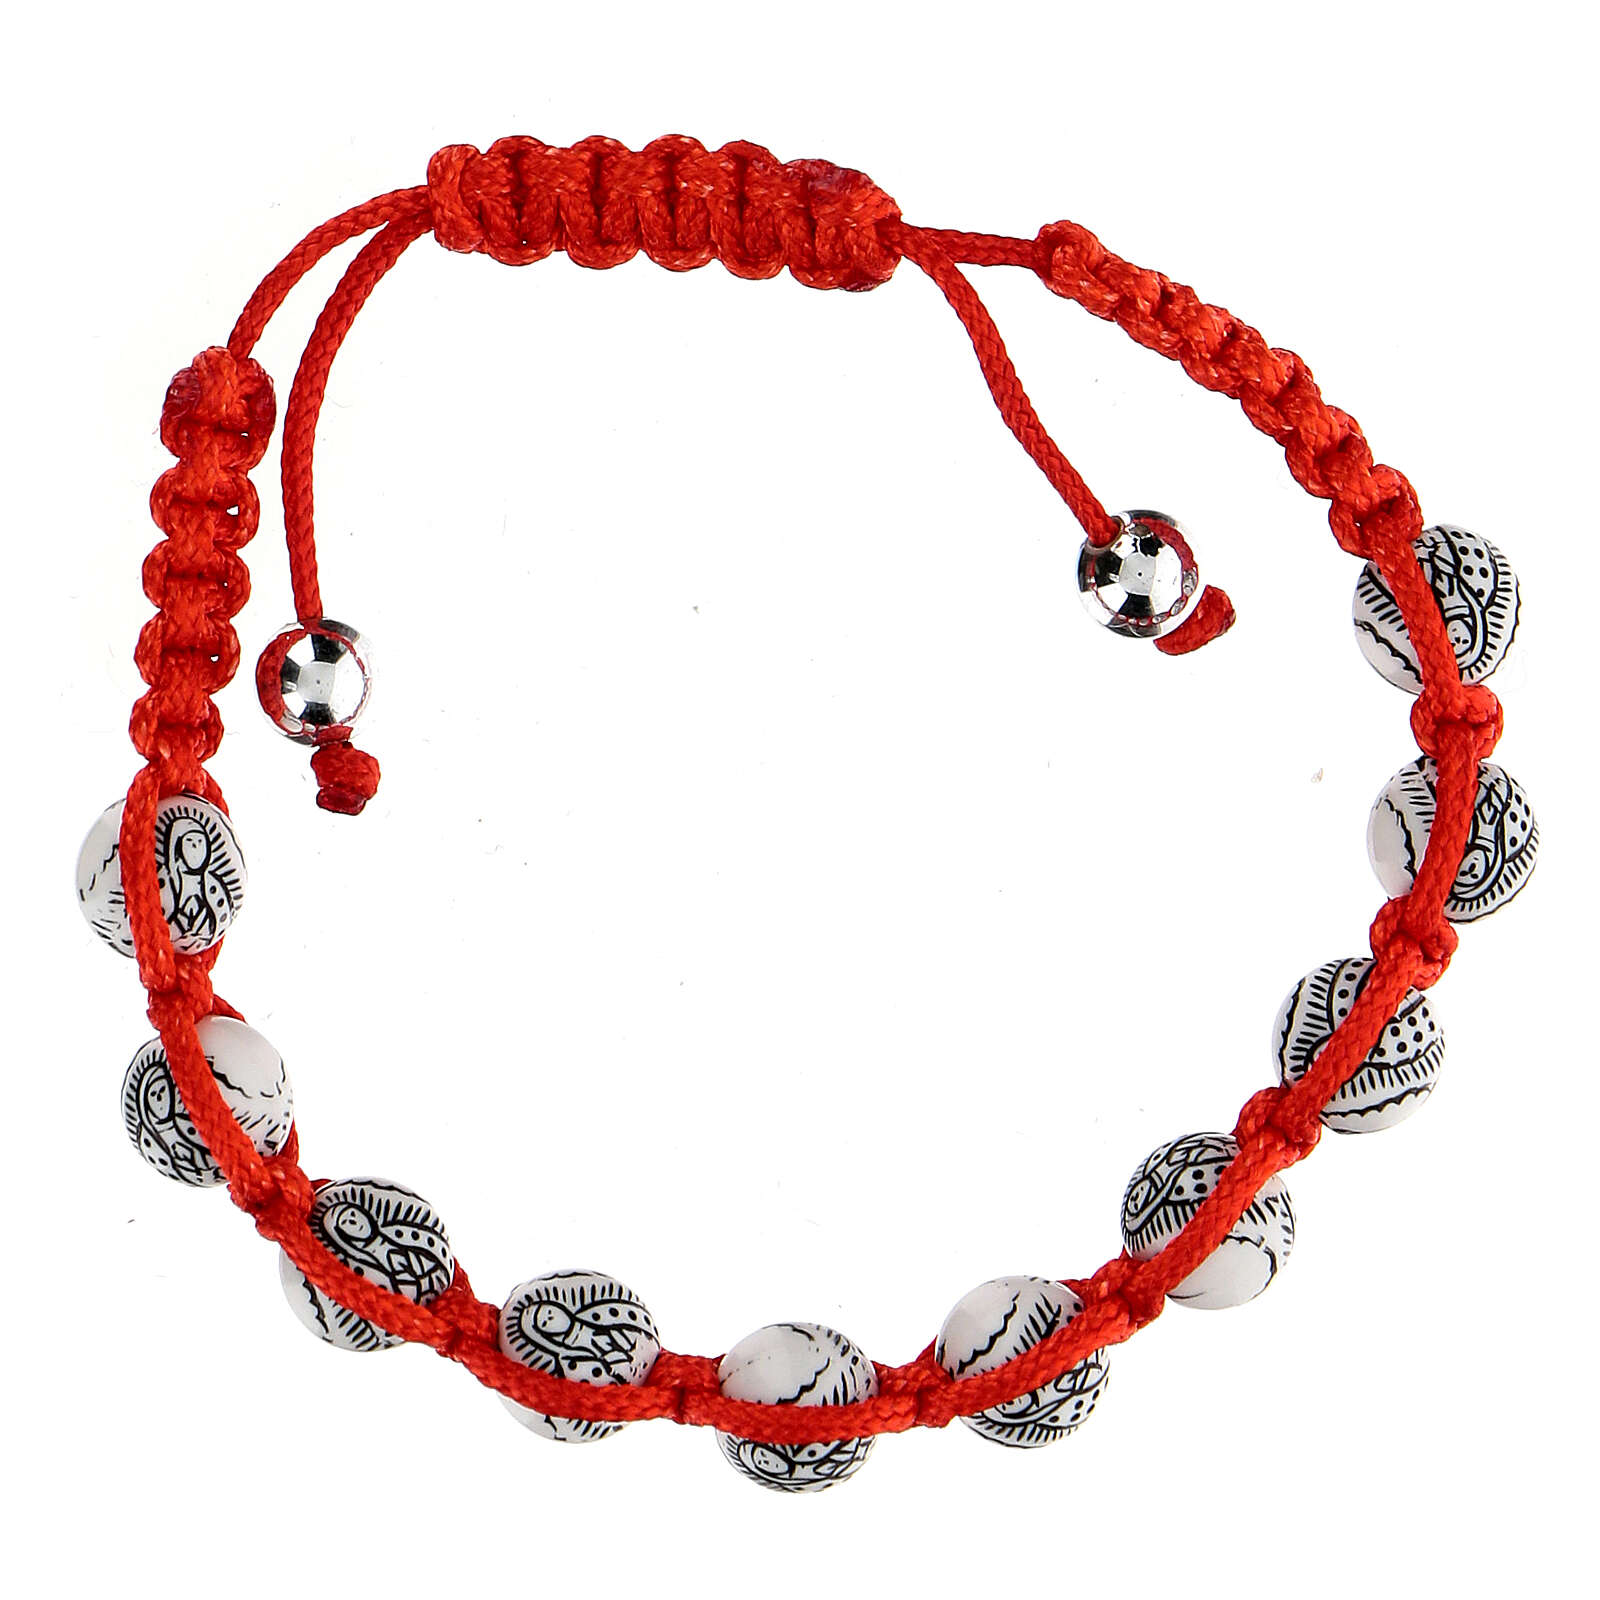 Decade rosary bracelet, Virgin of Guadalupe red cord 5 mm 4